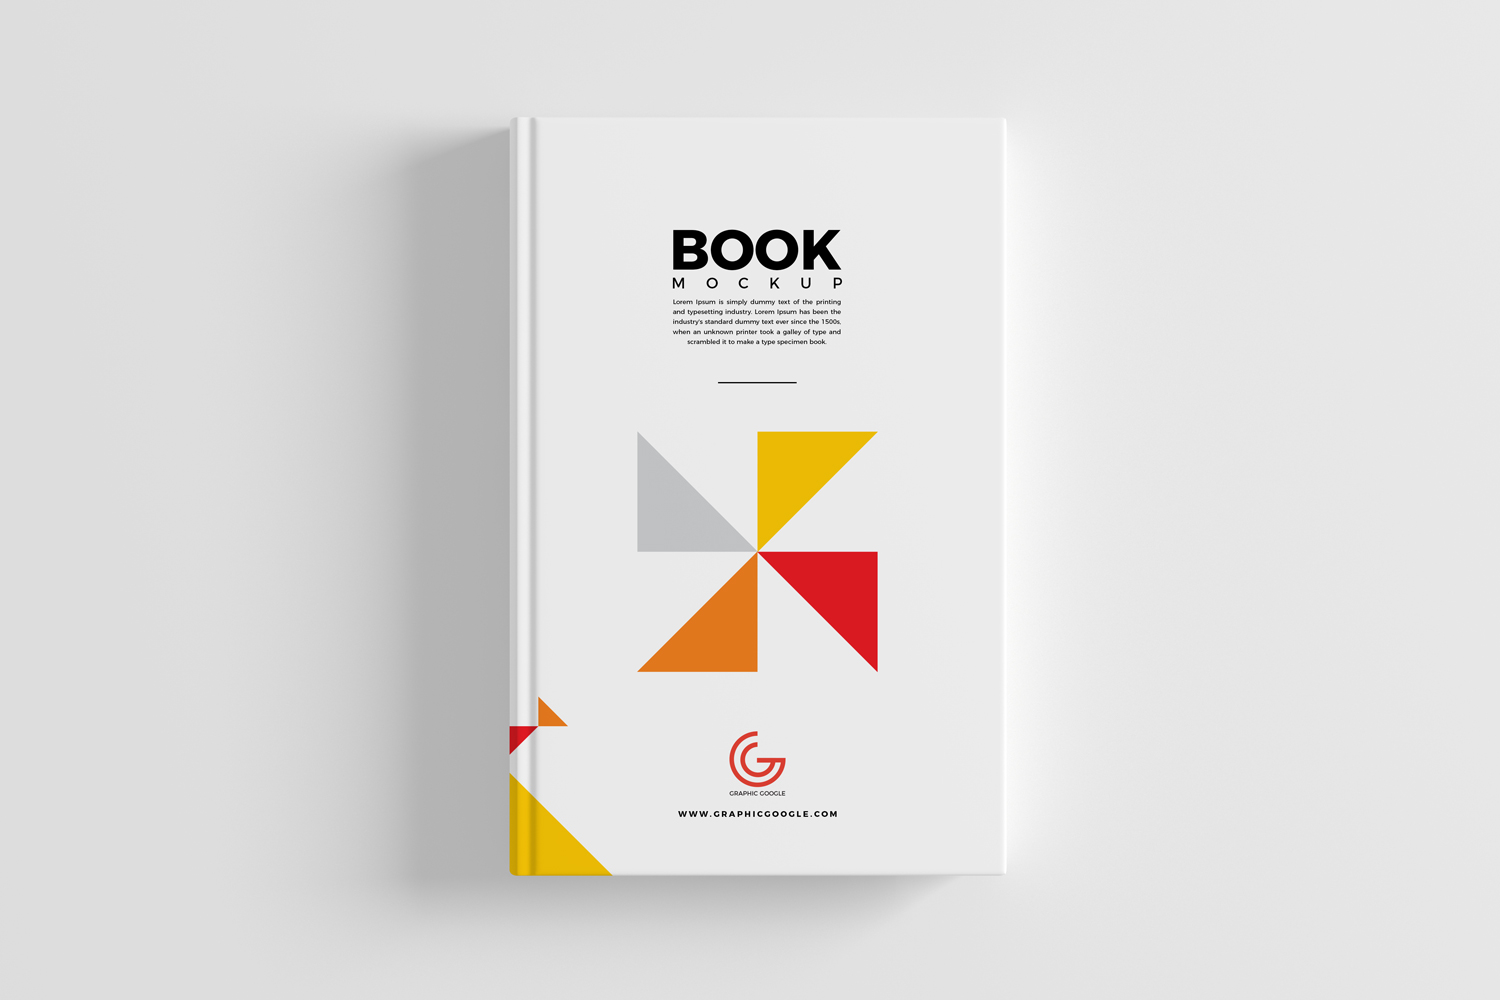 Free-Book-Cover-Mockup-PSD-For-Branding-1